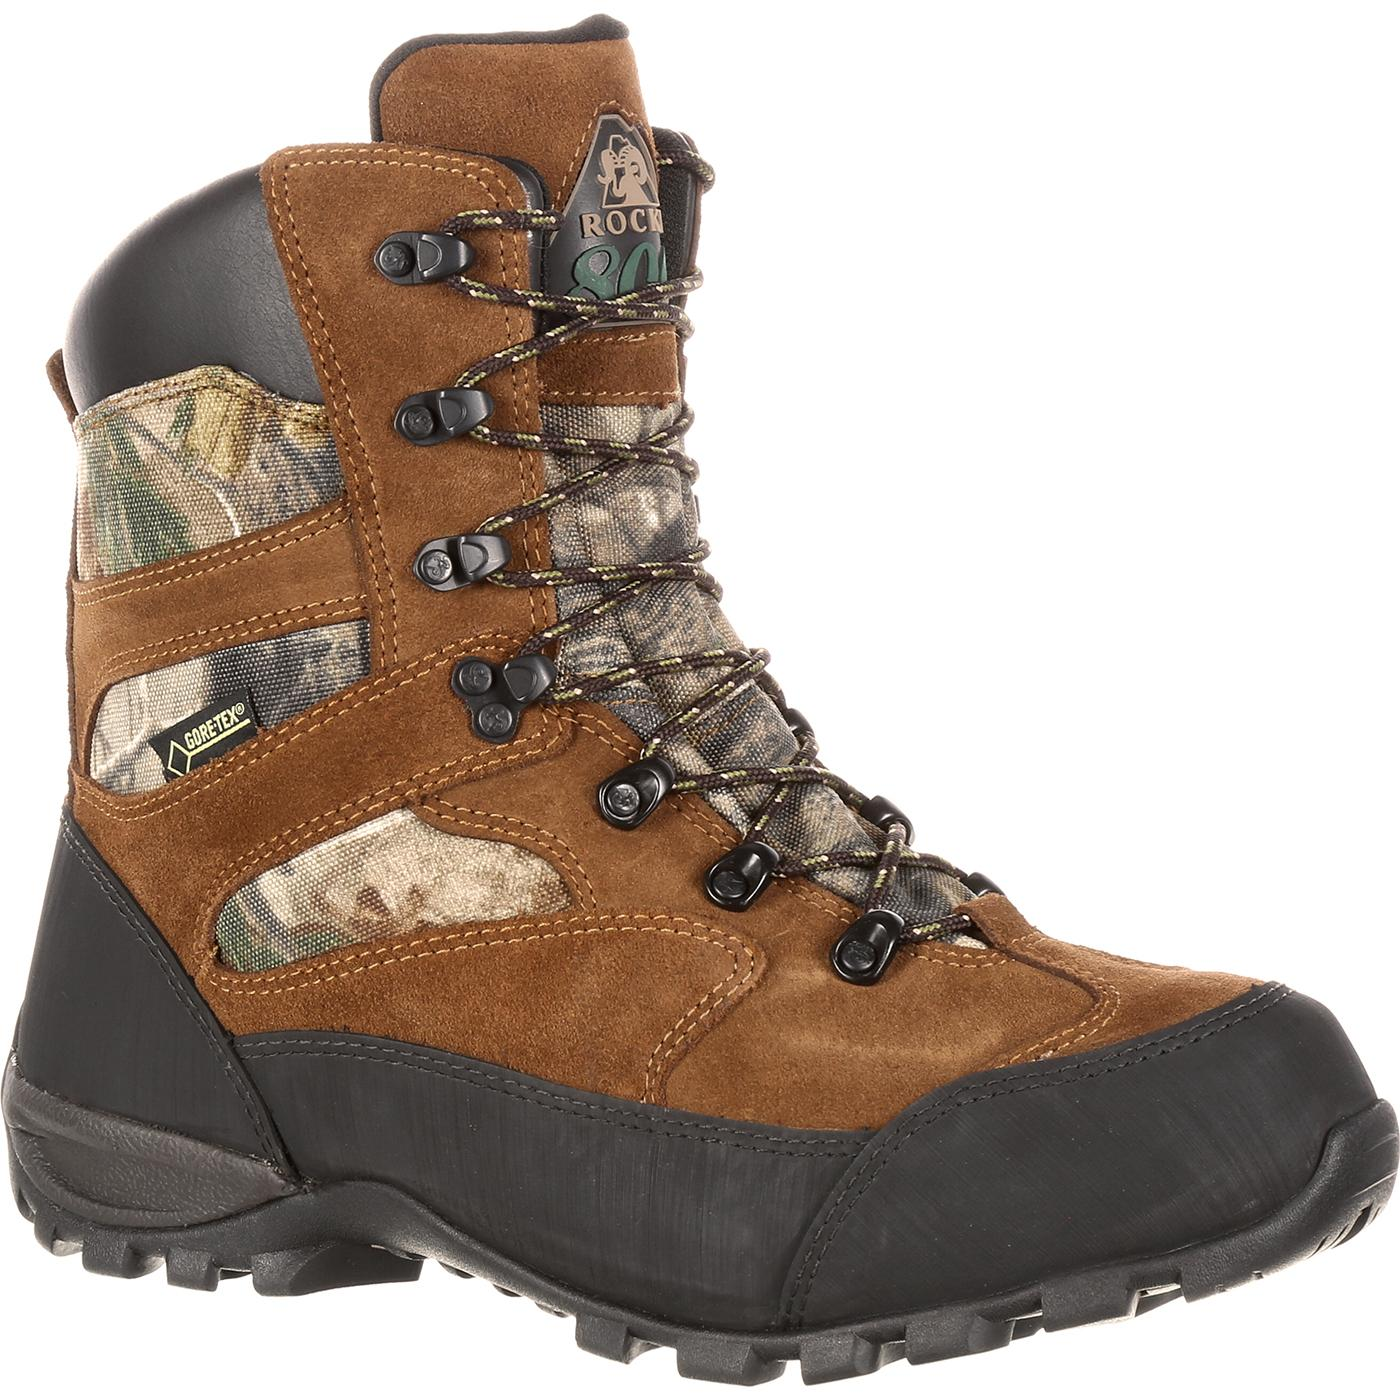 Rocky Boots Gore Tex Waterproof Insulated Outdoor Boot